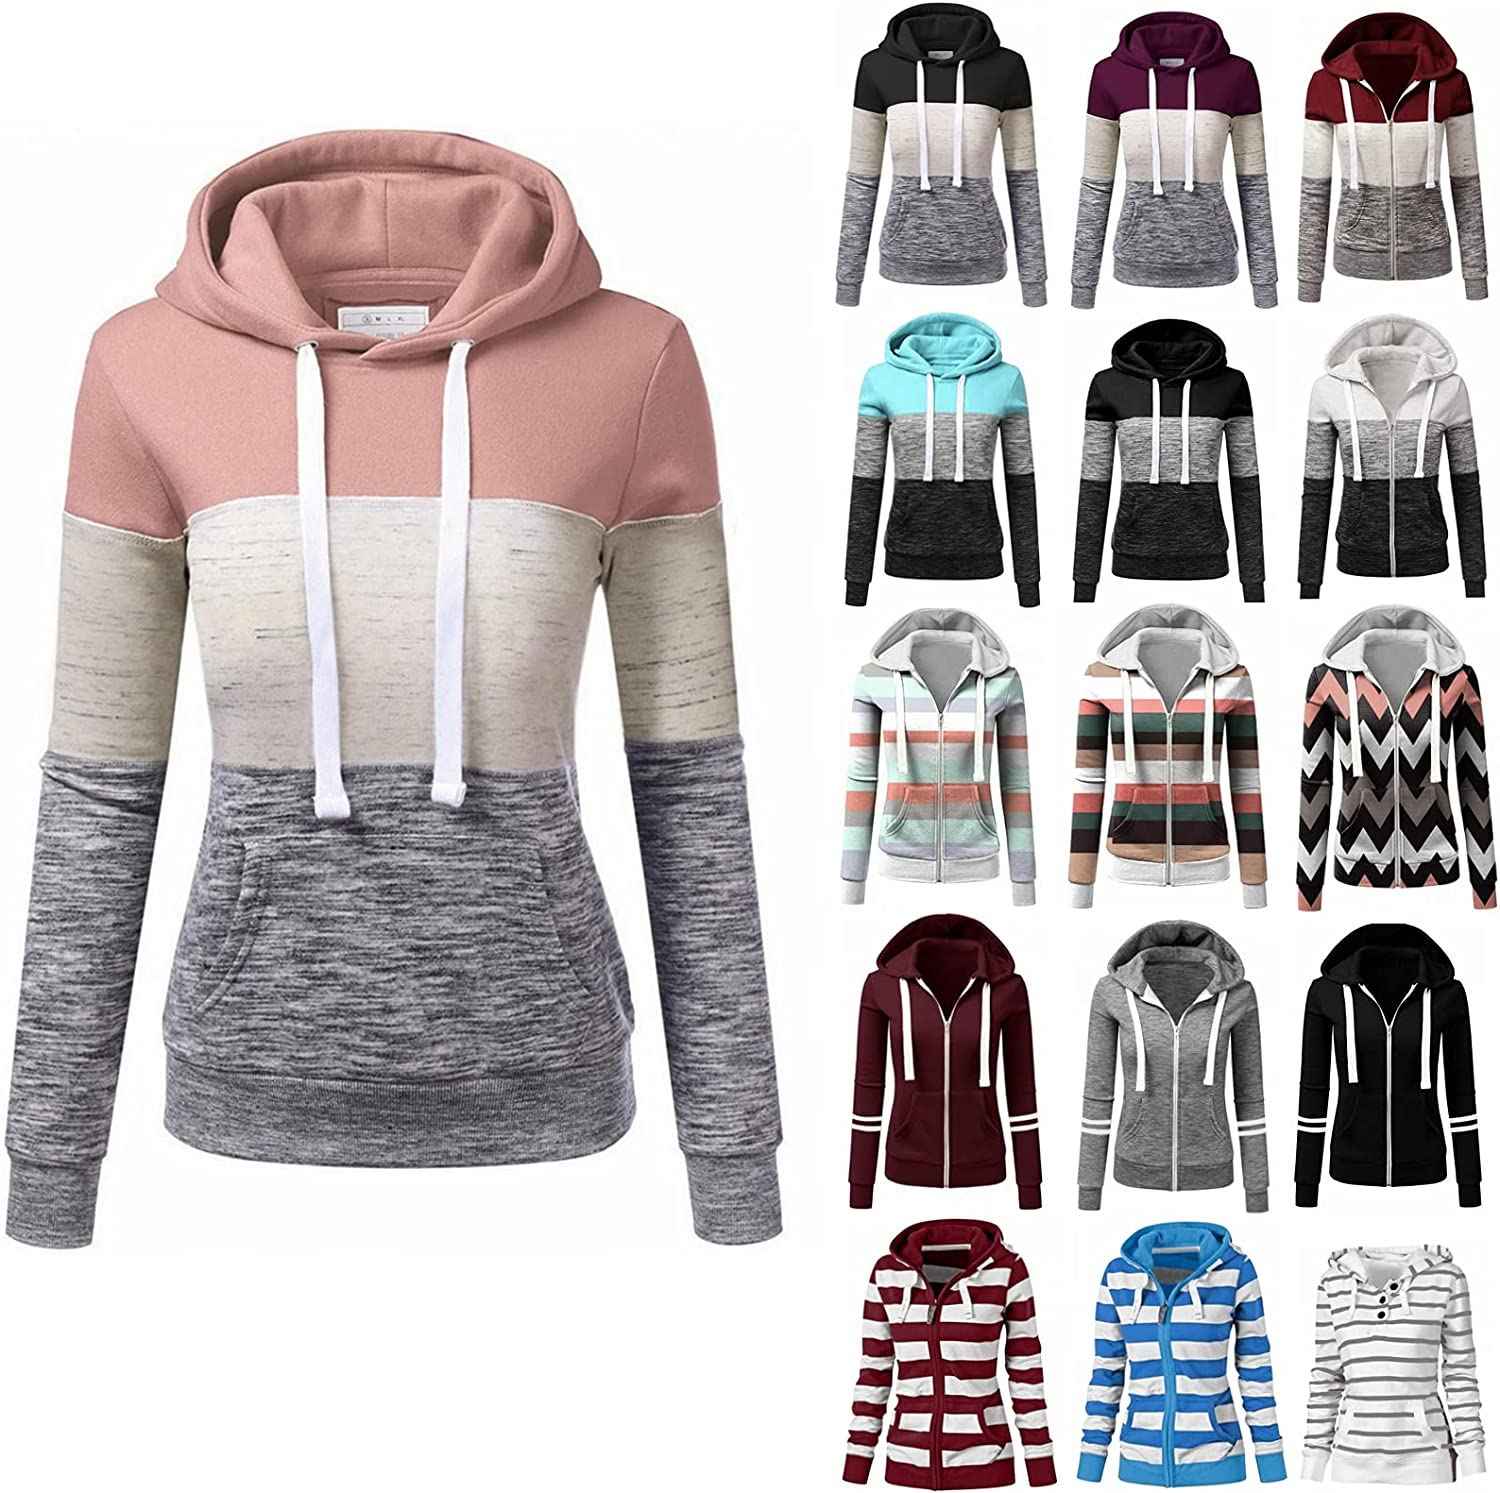 Fudule Long Sleeve Sweatshirts for Women, Teen Girls Zip Up Hoodie Patchwork Shirts Casual Loose Fitting Hooded Pullover